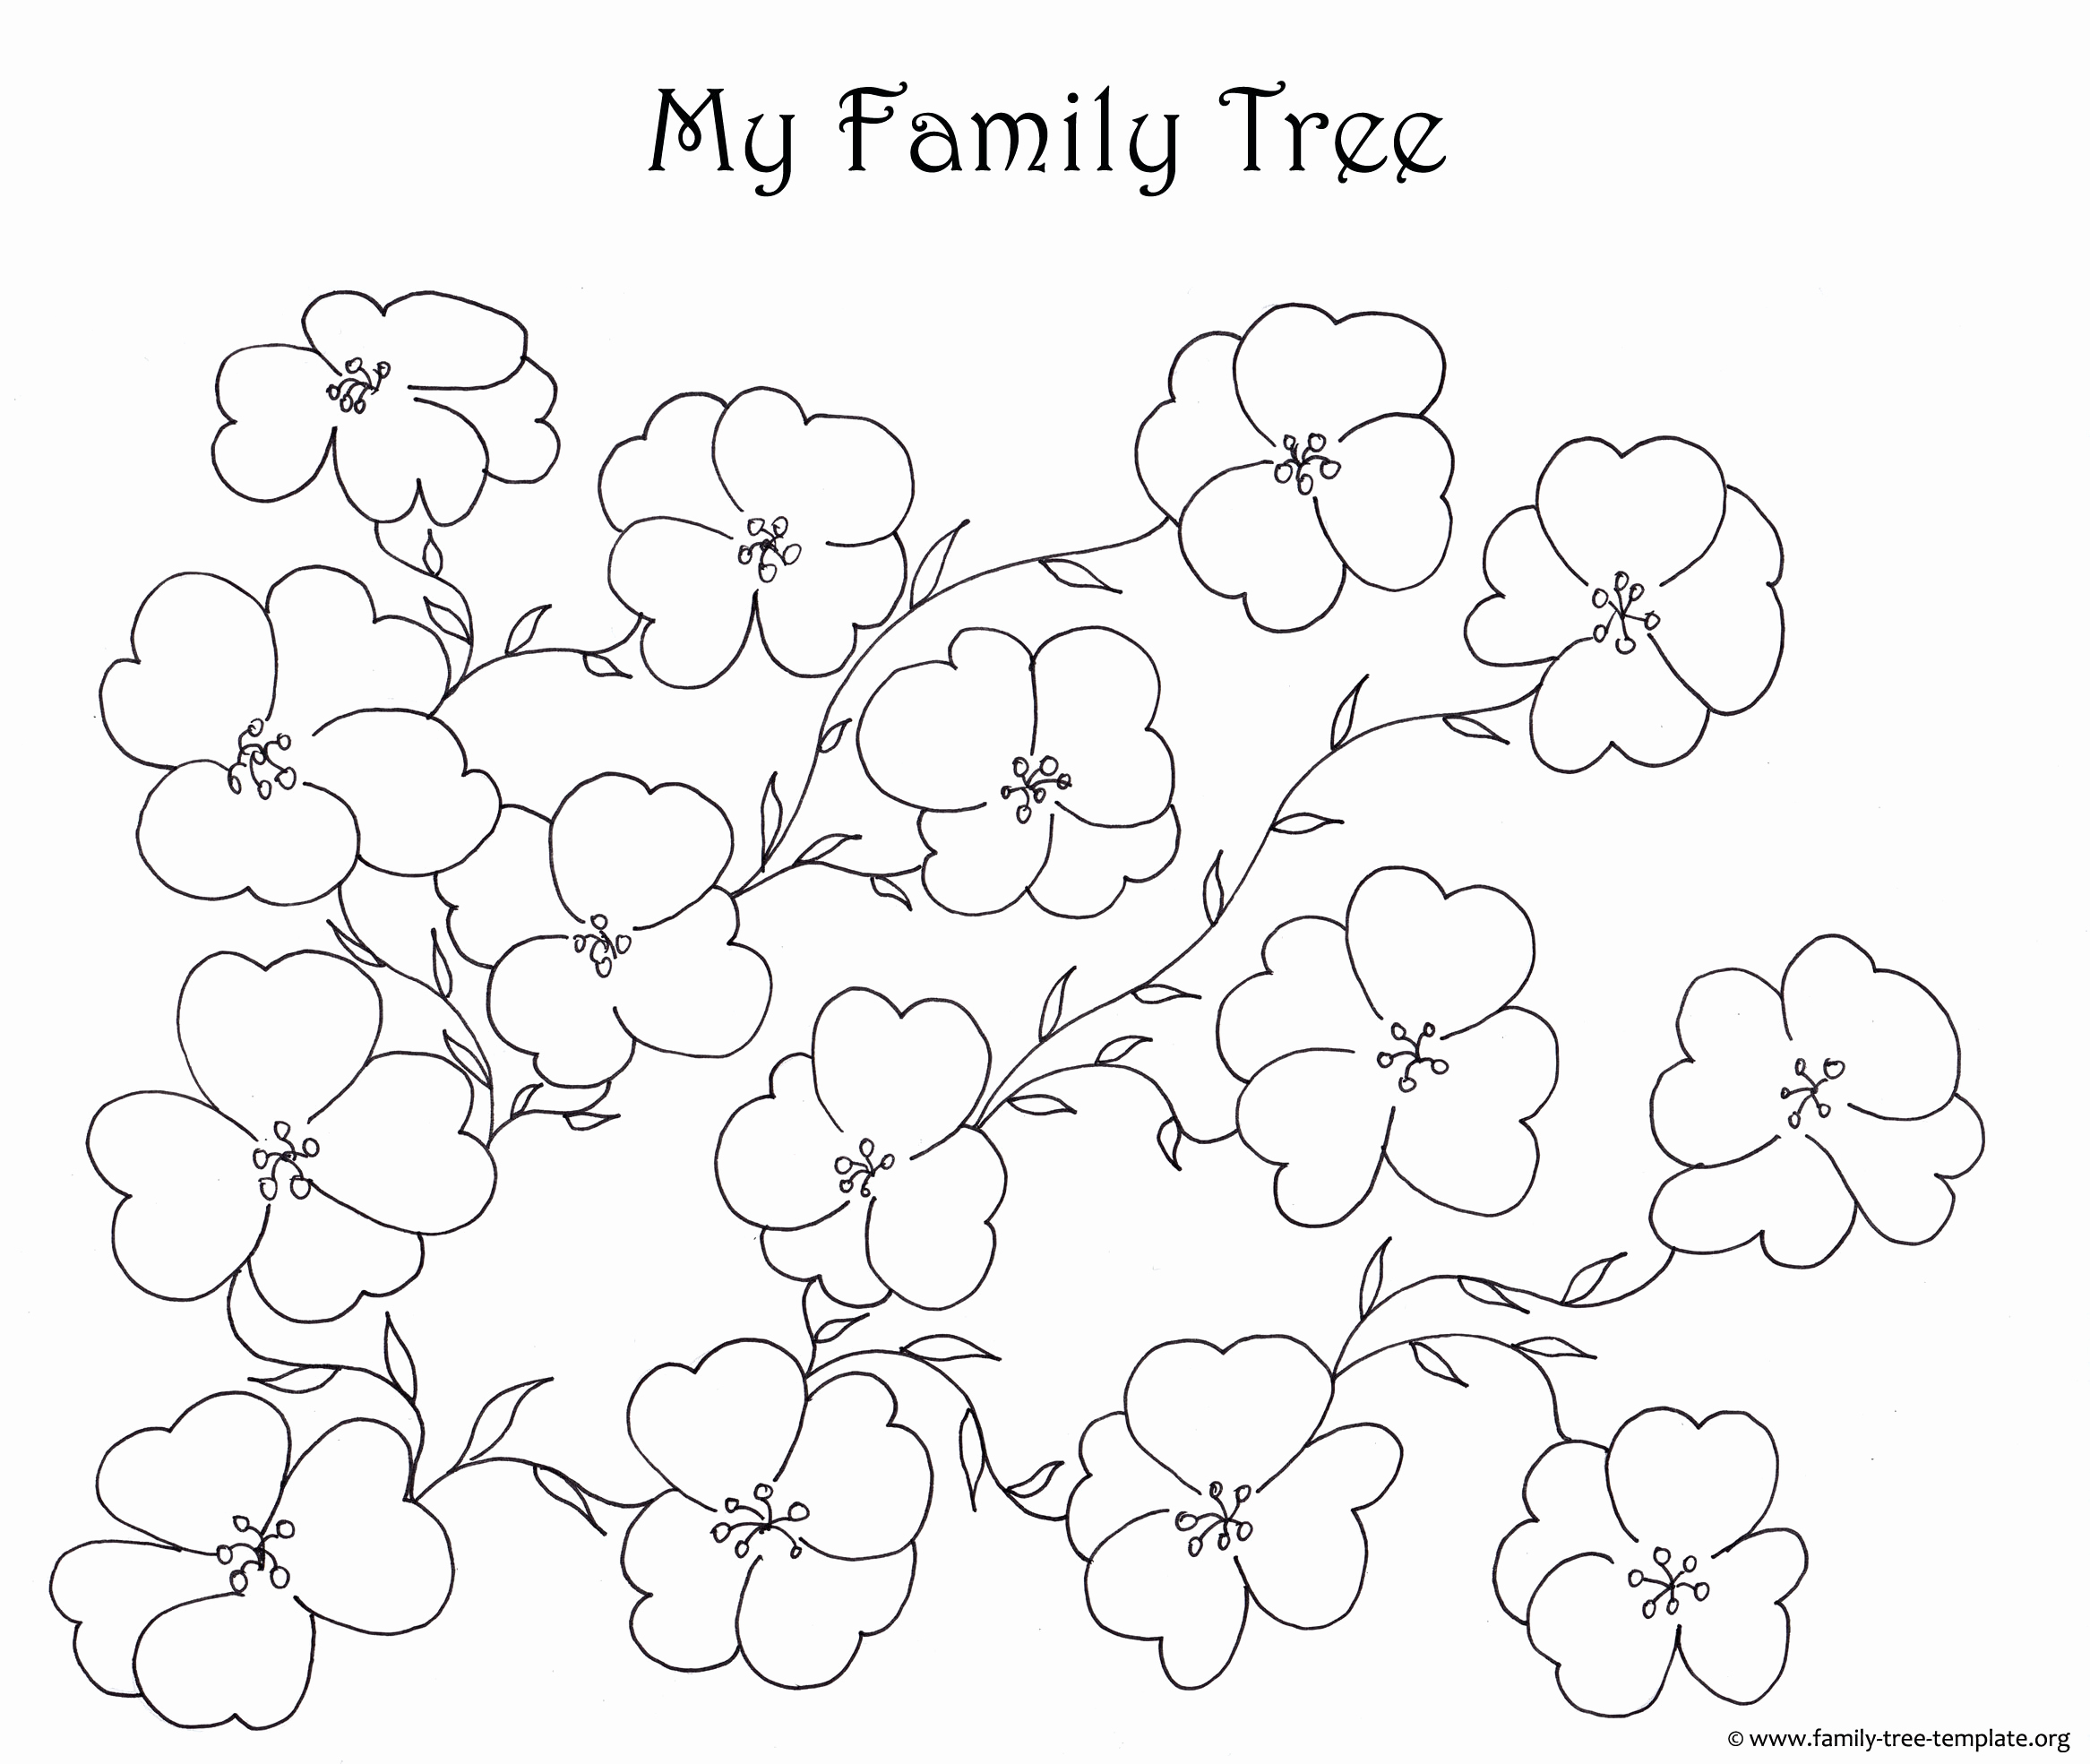 Free Printable Family Tree Awesome Make A Family Tree Easily with these Free Ancestry Charts